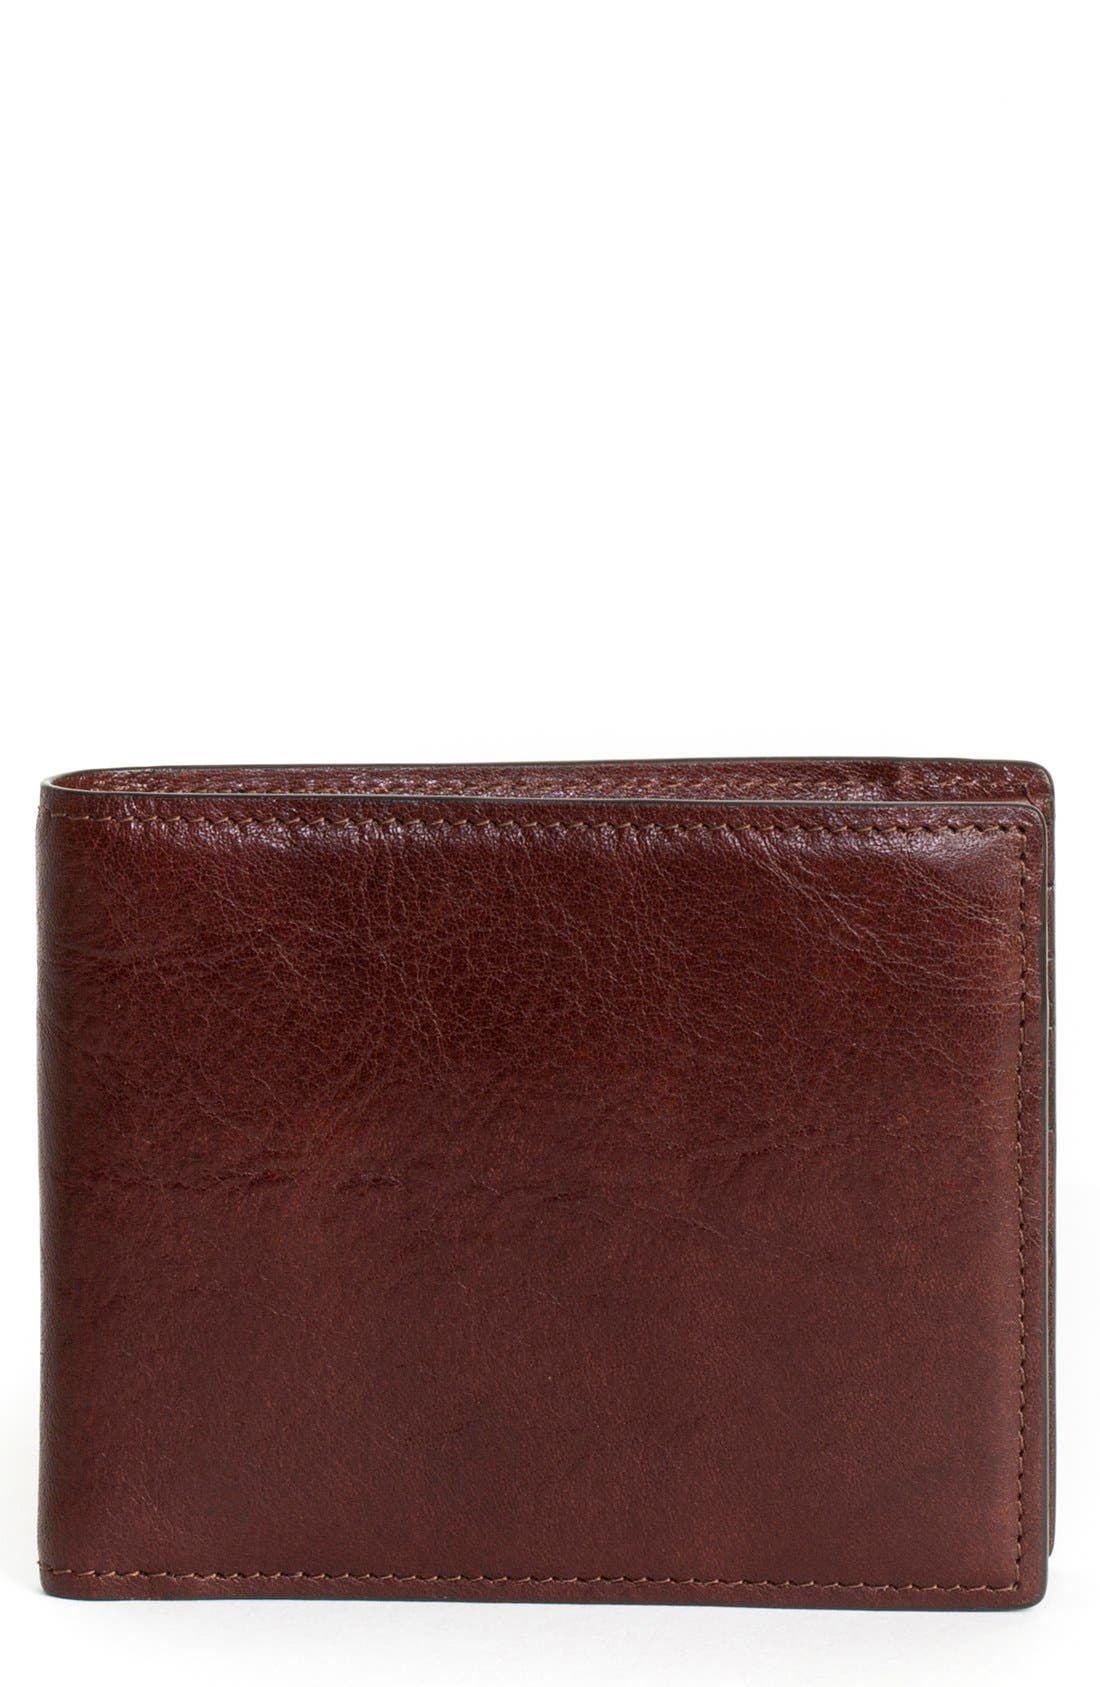 'Becker' Leather Wallet,                         Main,                         color, 215